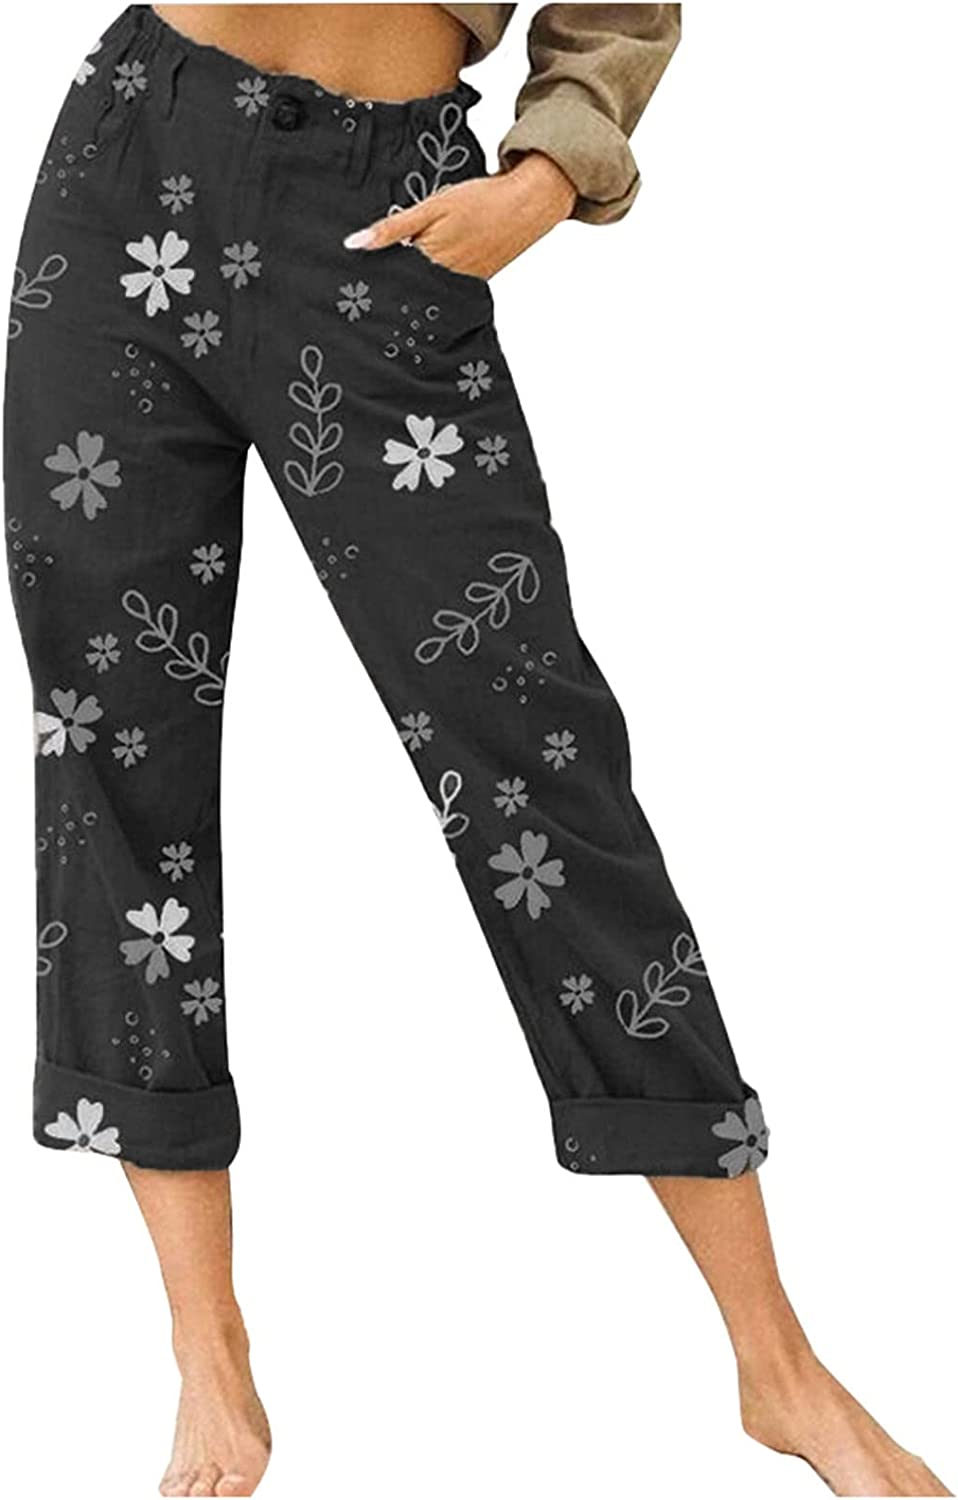 Smileyth Women Summer Cropped Pants Floral Printed Elastic Waist Pocket Loose Straight Trousers Casual Pants